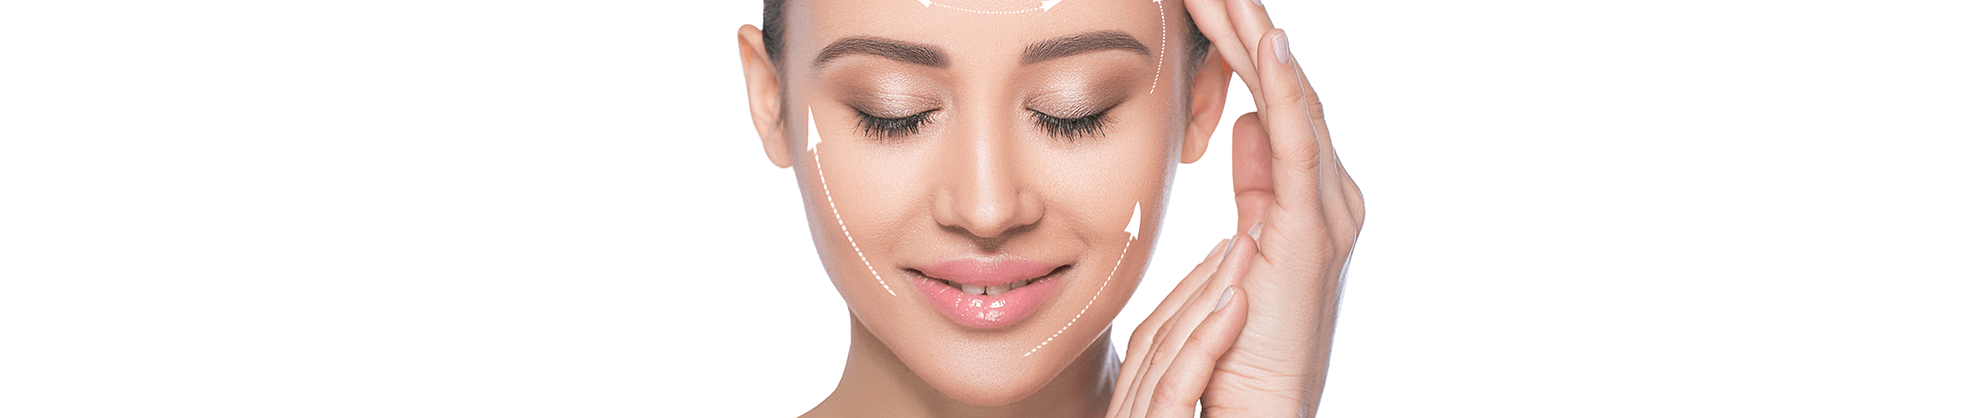 Facial Injectables in Midland, TX